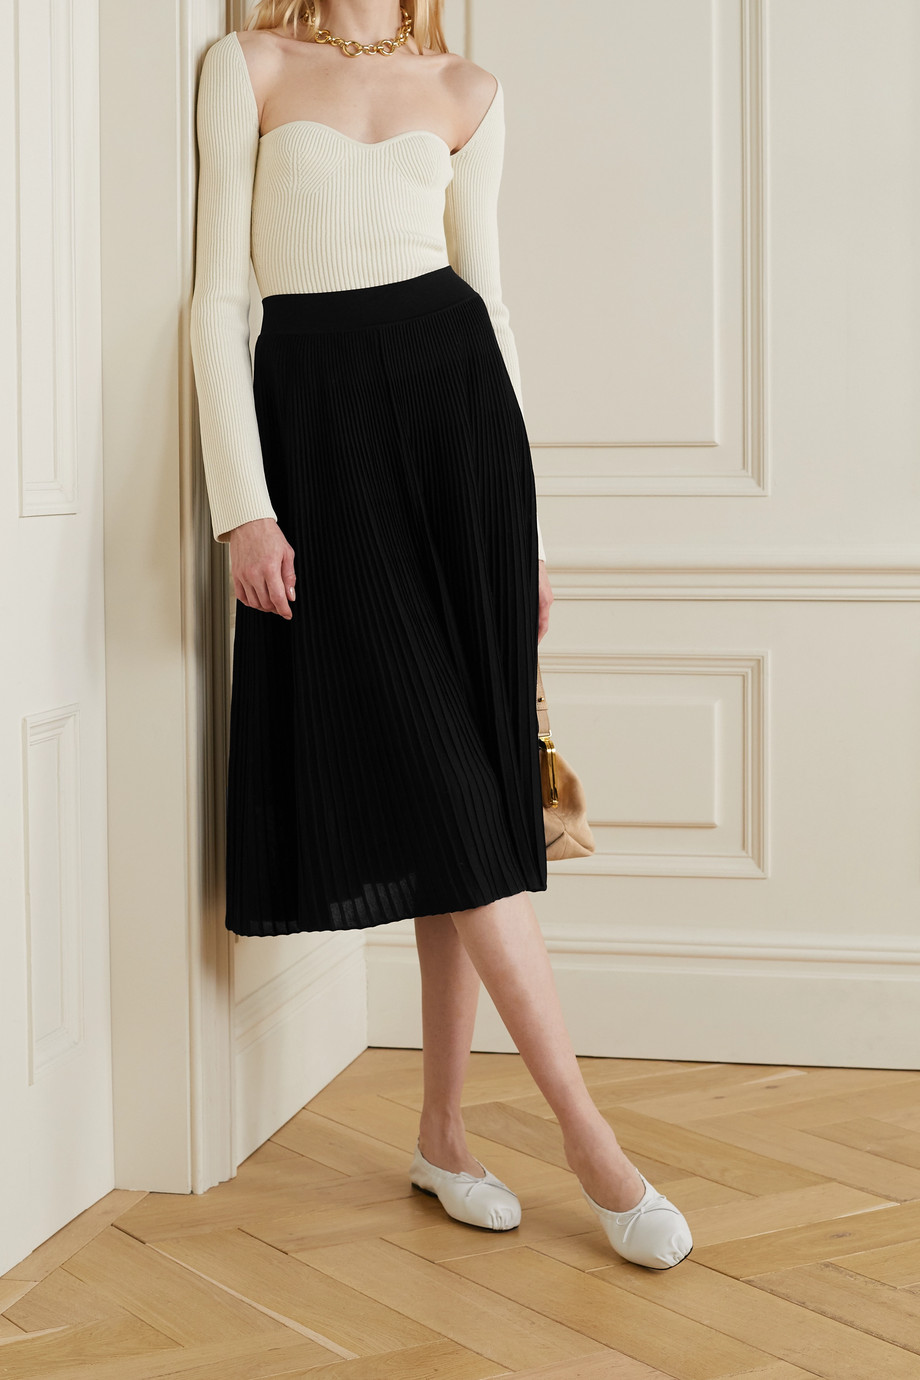 CASASOLA + NET SUSTAIN Berta ribbed mulberry silk midi skirt